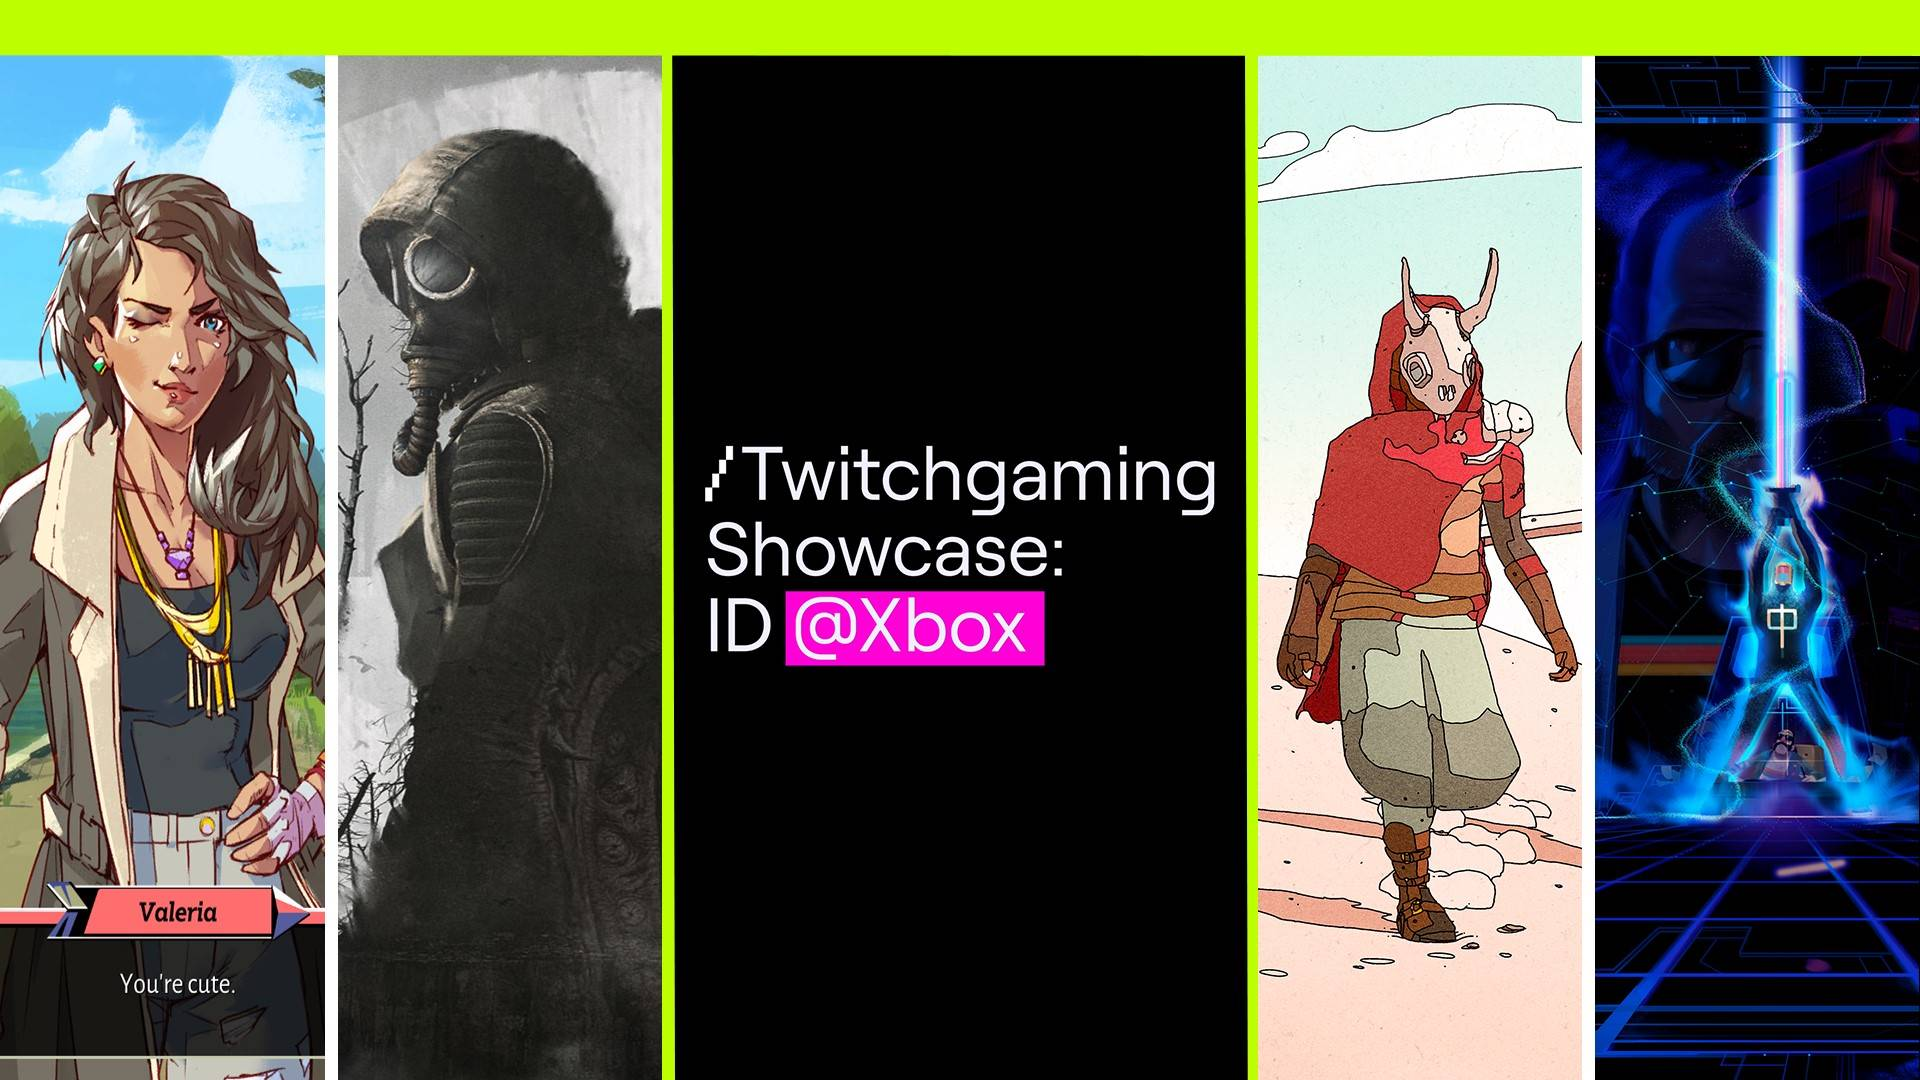 Hero asset for /twitchgaming showcase: ID@Xbox